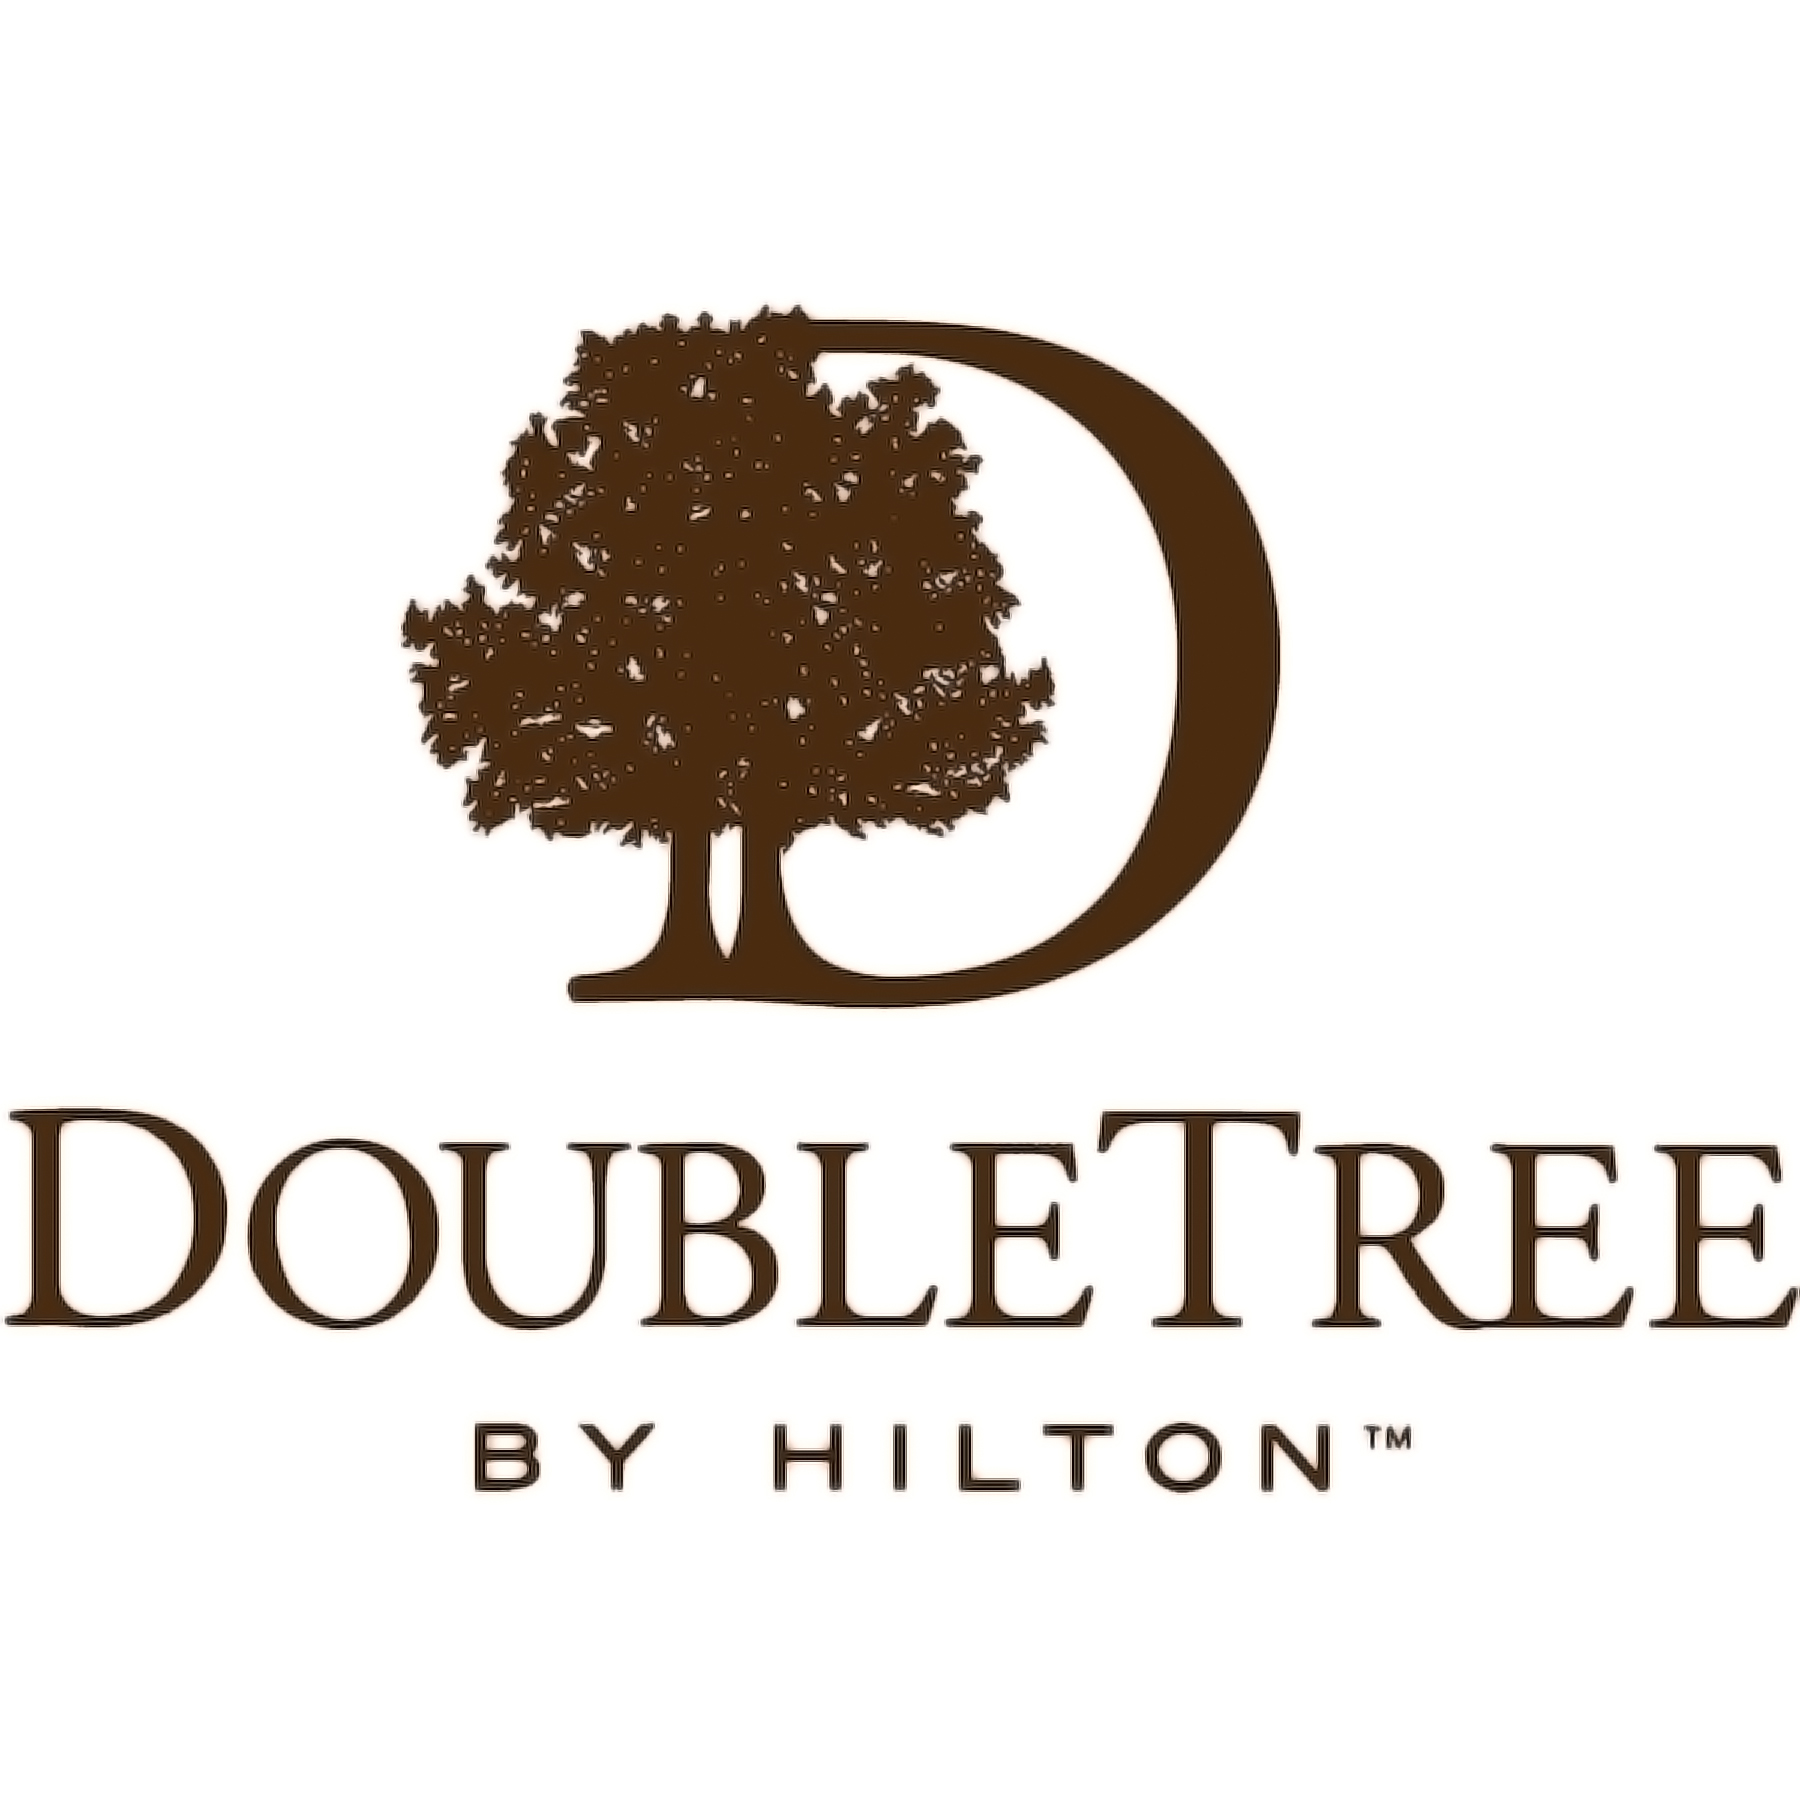 A Doubletree By Hilton Hotel In: Double Tree By Hilton, Chinchwad, India. Business Hotel